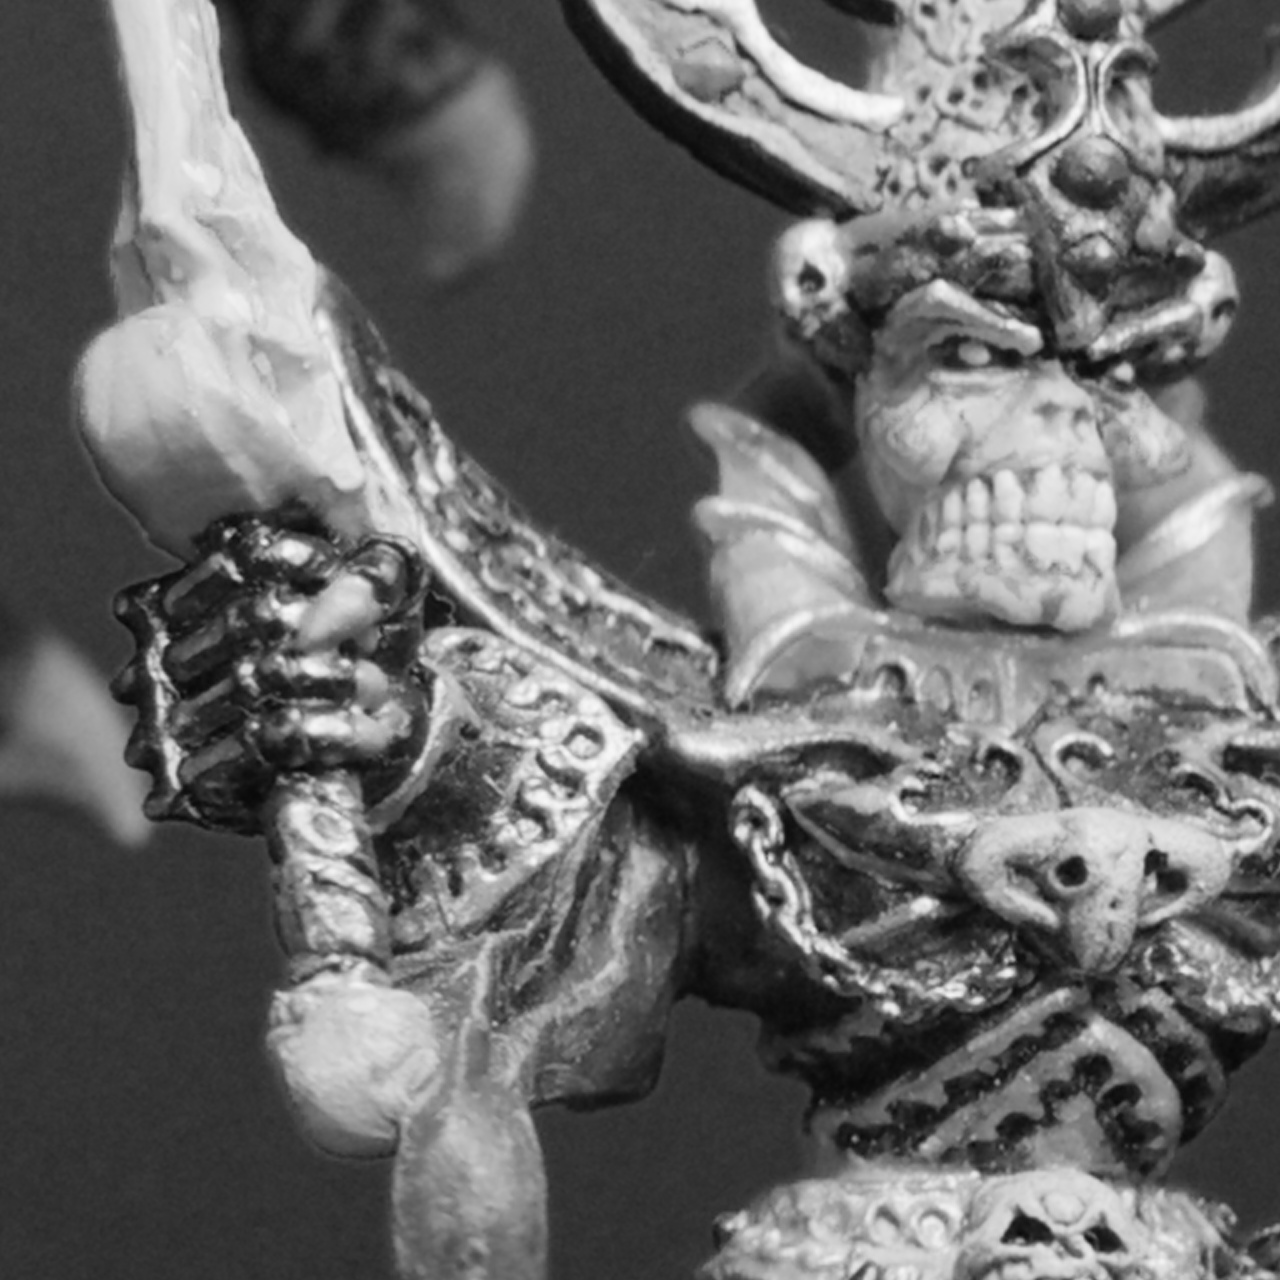 Minatures_Detail1_BRAW_red_channel.jpg